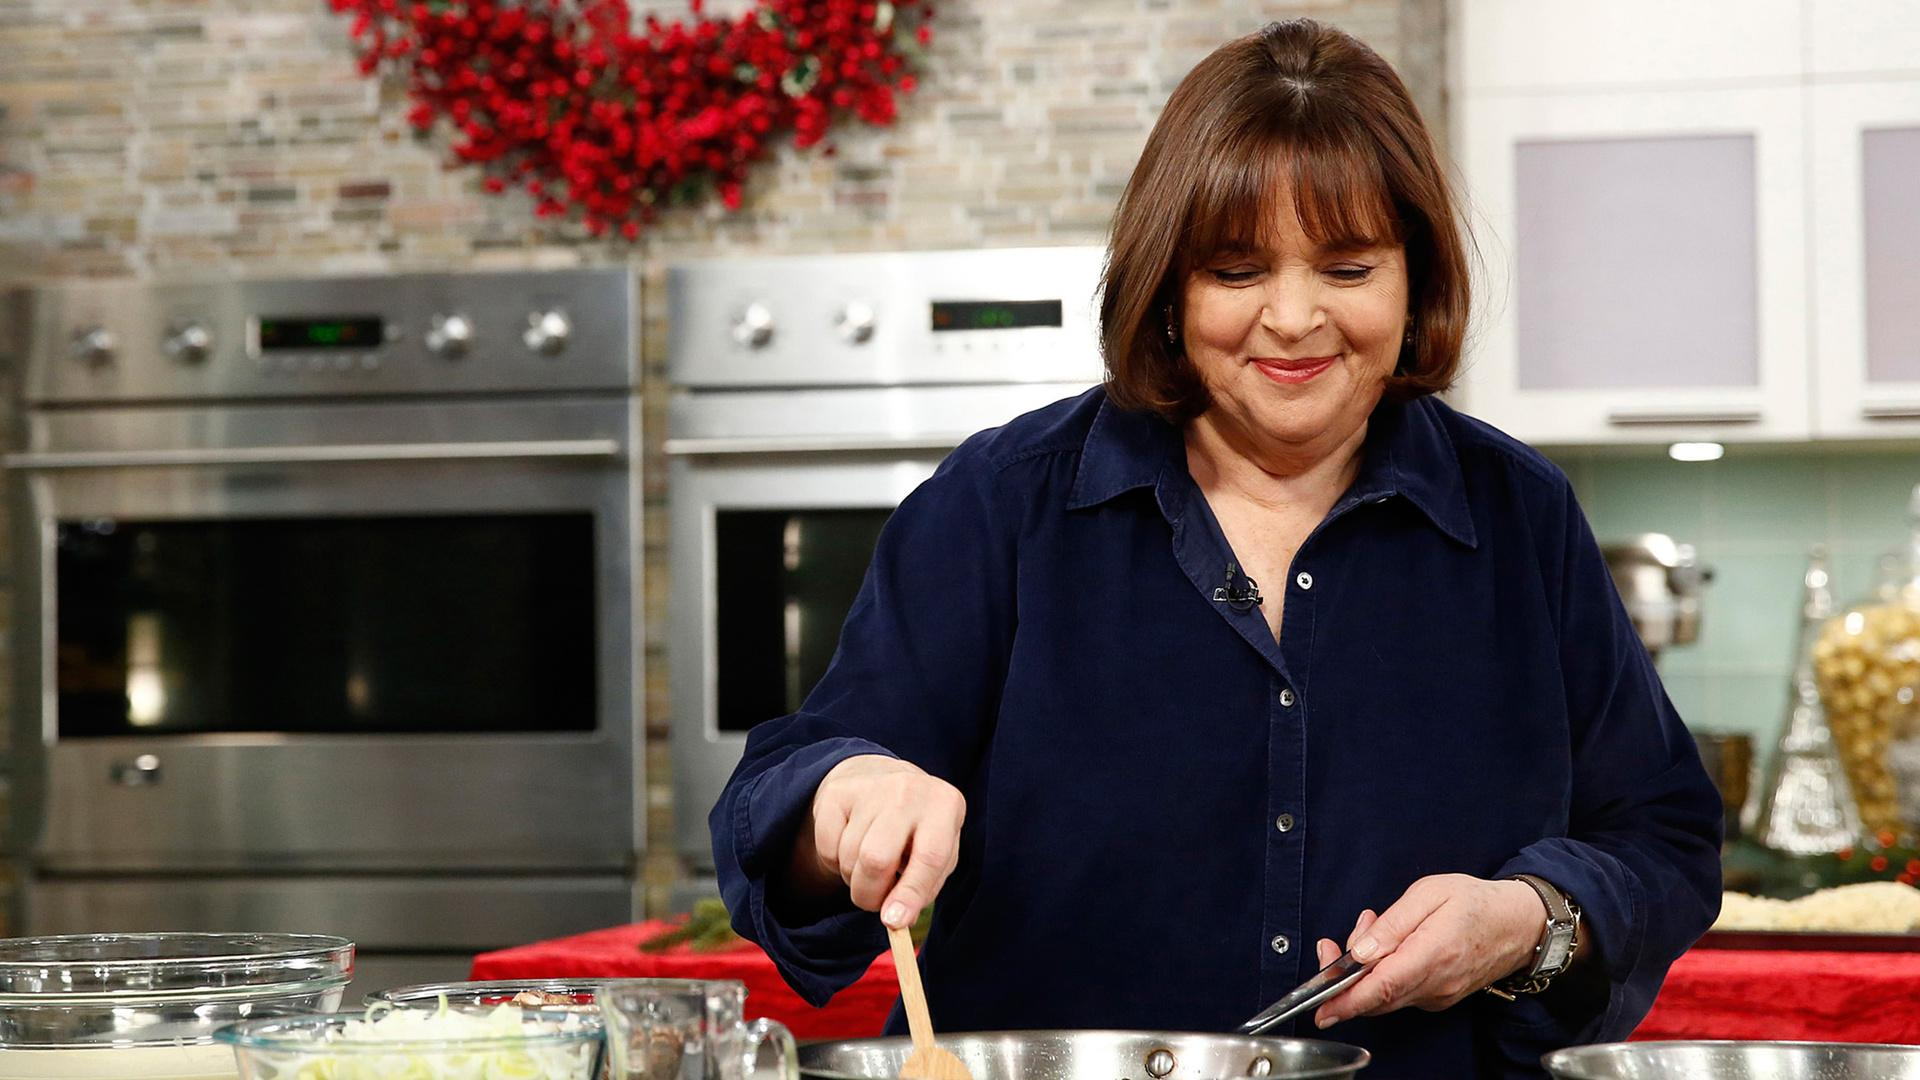 11 Things You Never Knew About Ina Garten